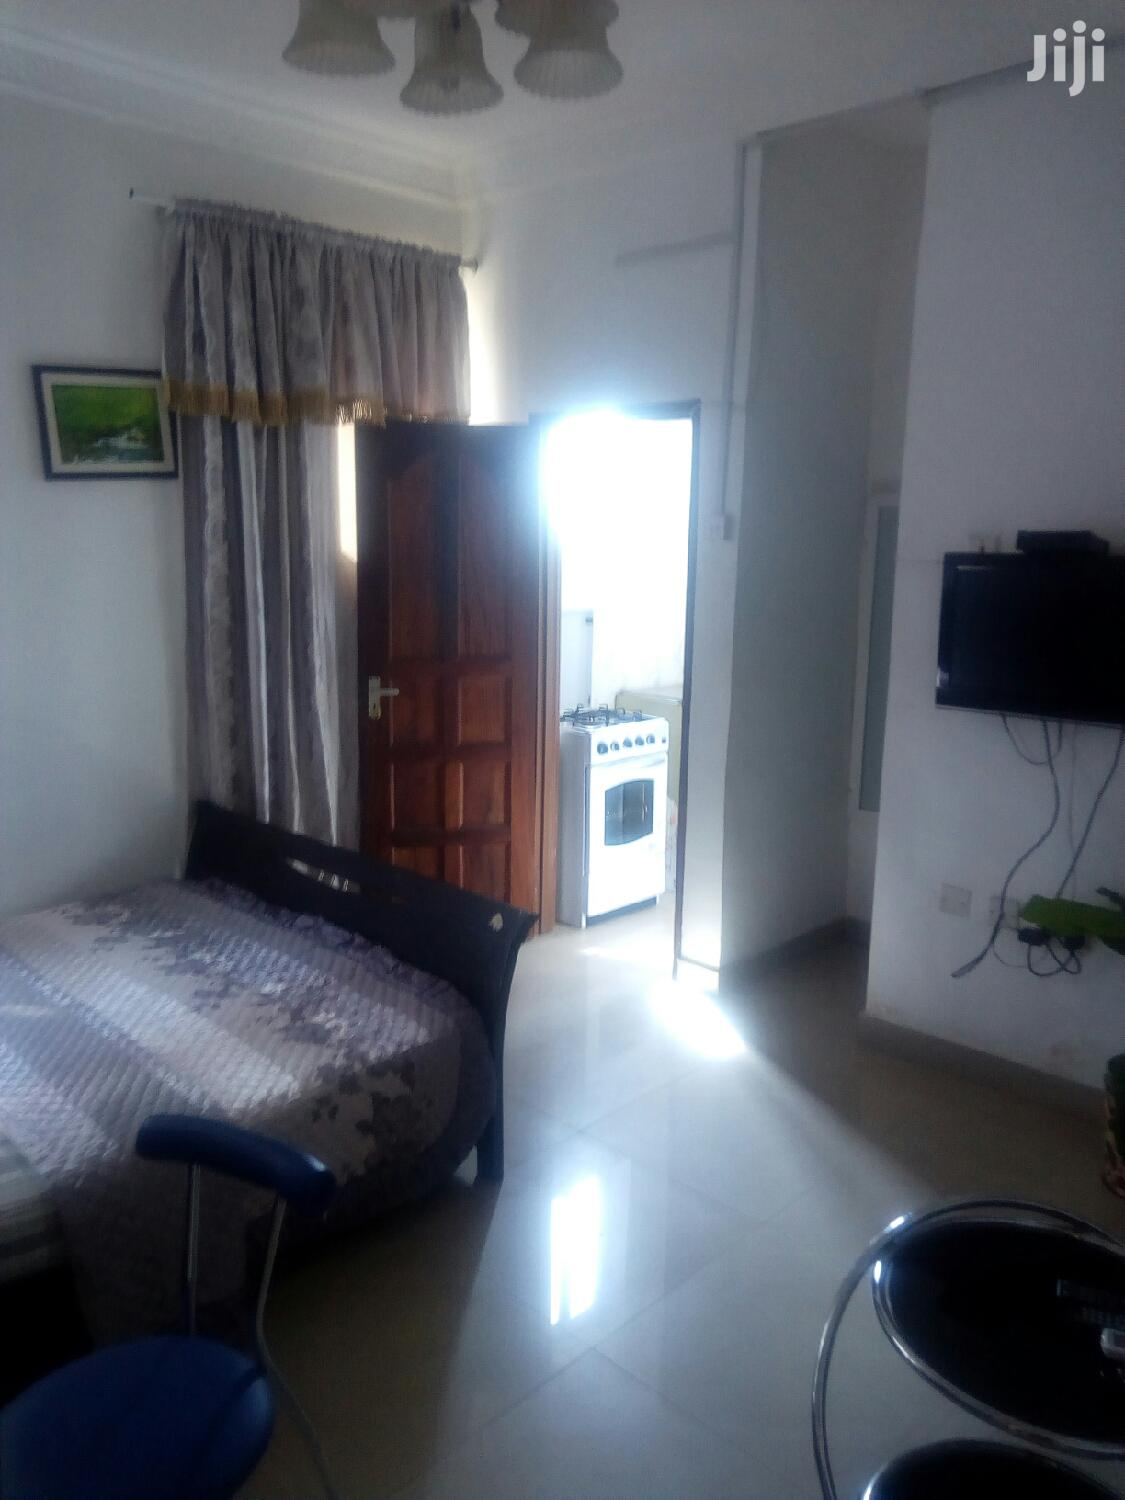 Fully Furnished Room at Dzorwulu Coming With an AC Payable Monthly | Houses & Apartments For Rent for sale in Dzorwulu, Greater Accra, Ghana